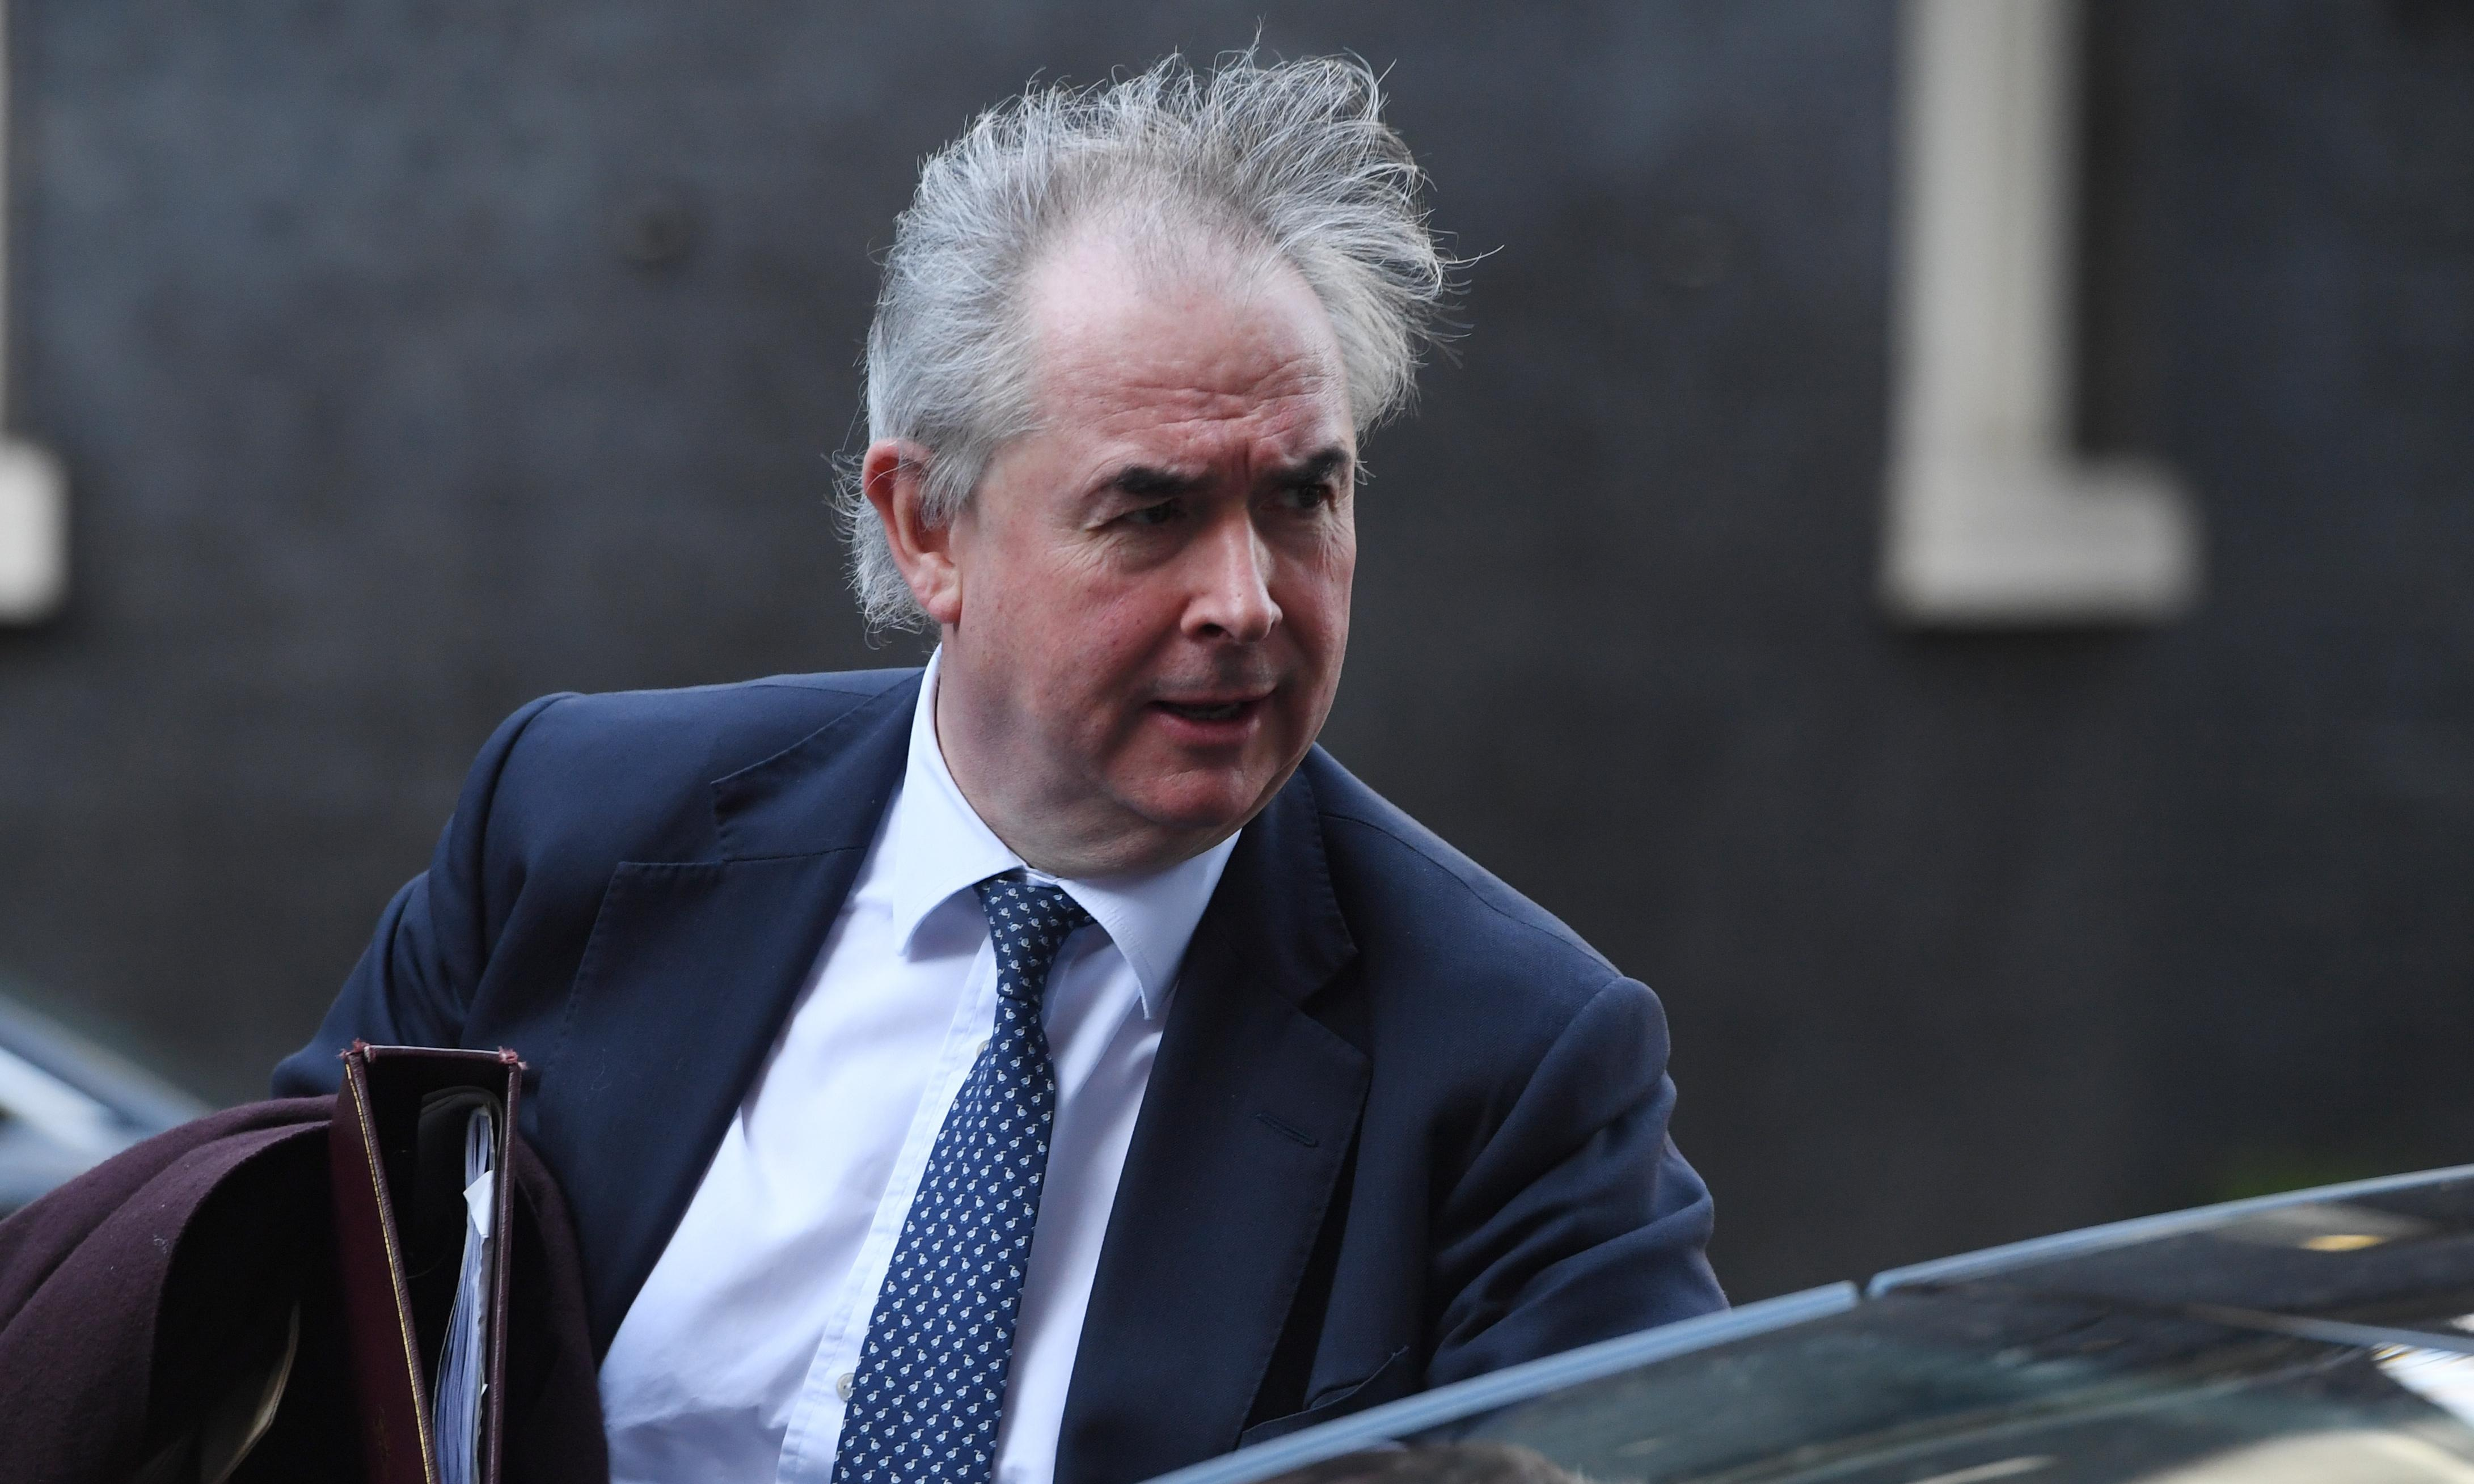 Geoffrey Cox has no grounds to change his mind on the Northern Ireland backstop